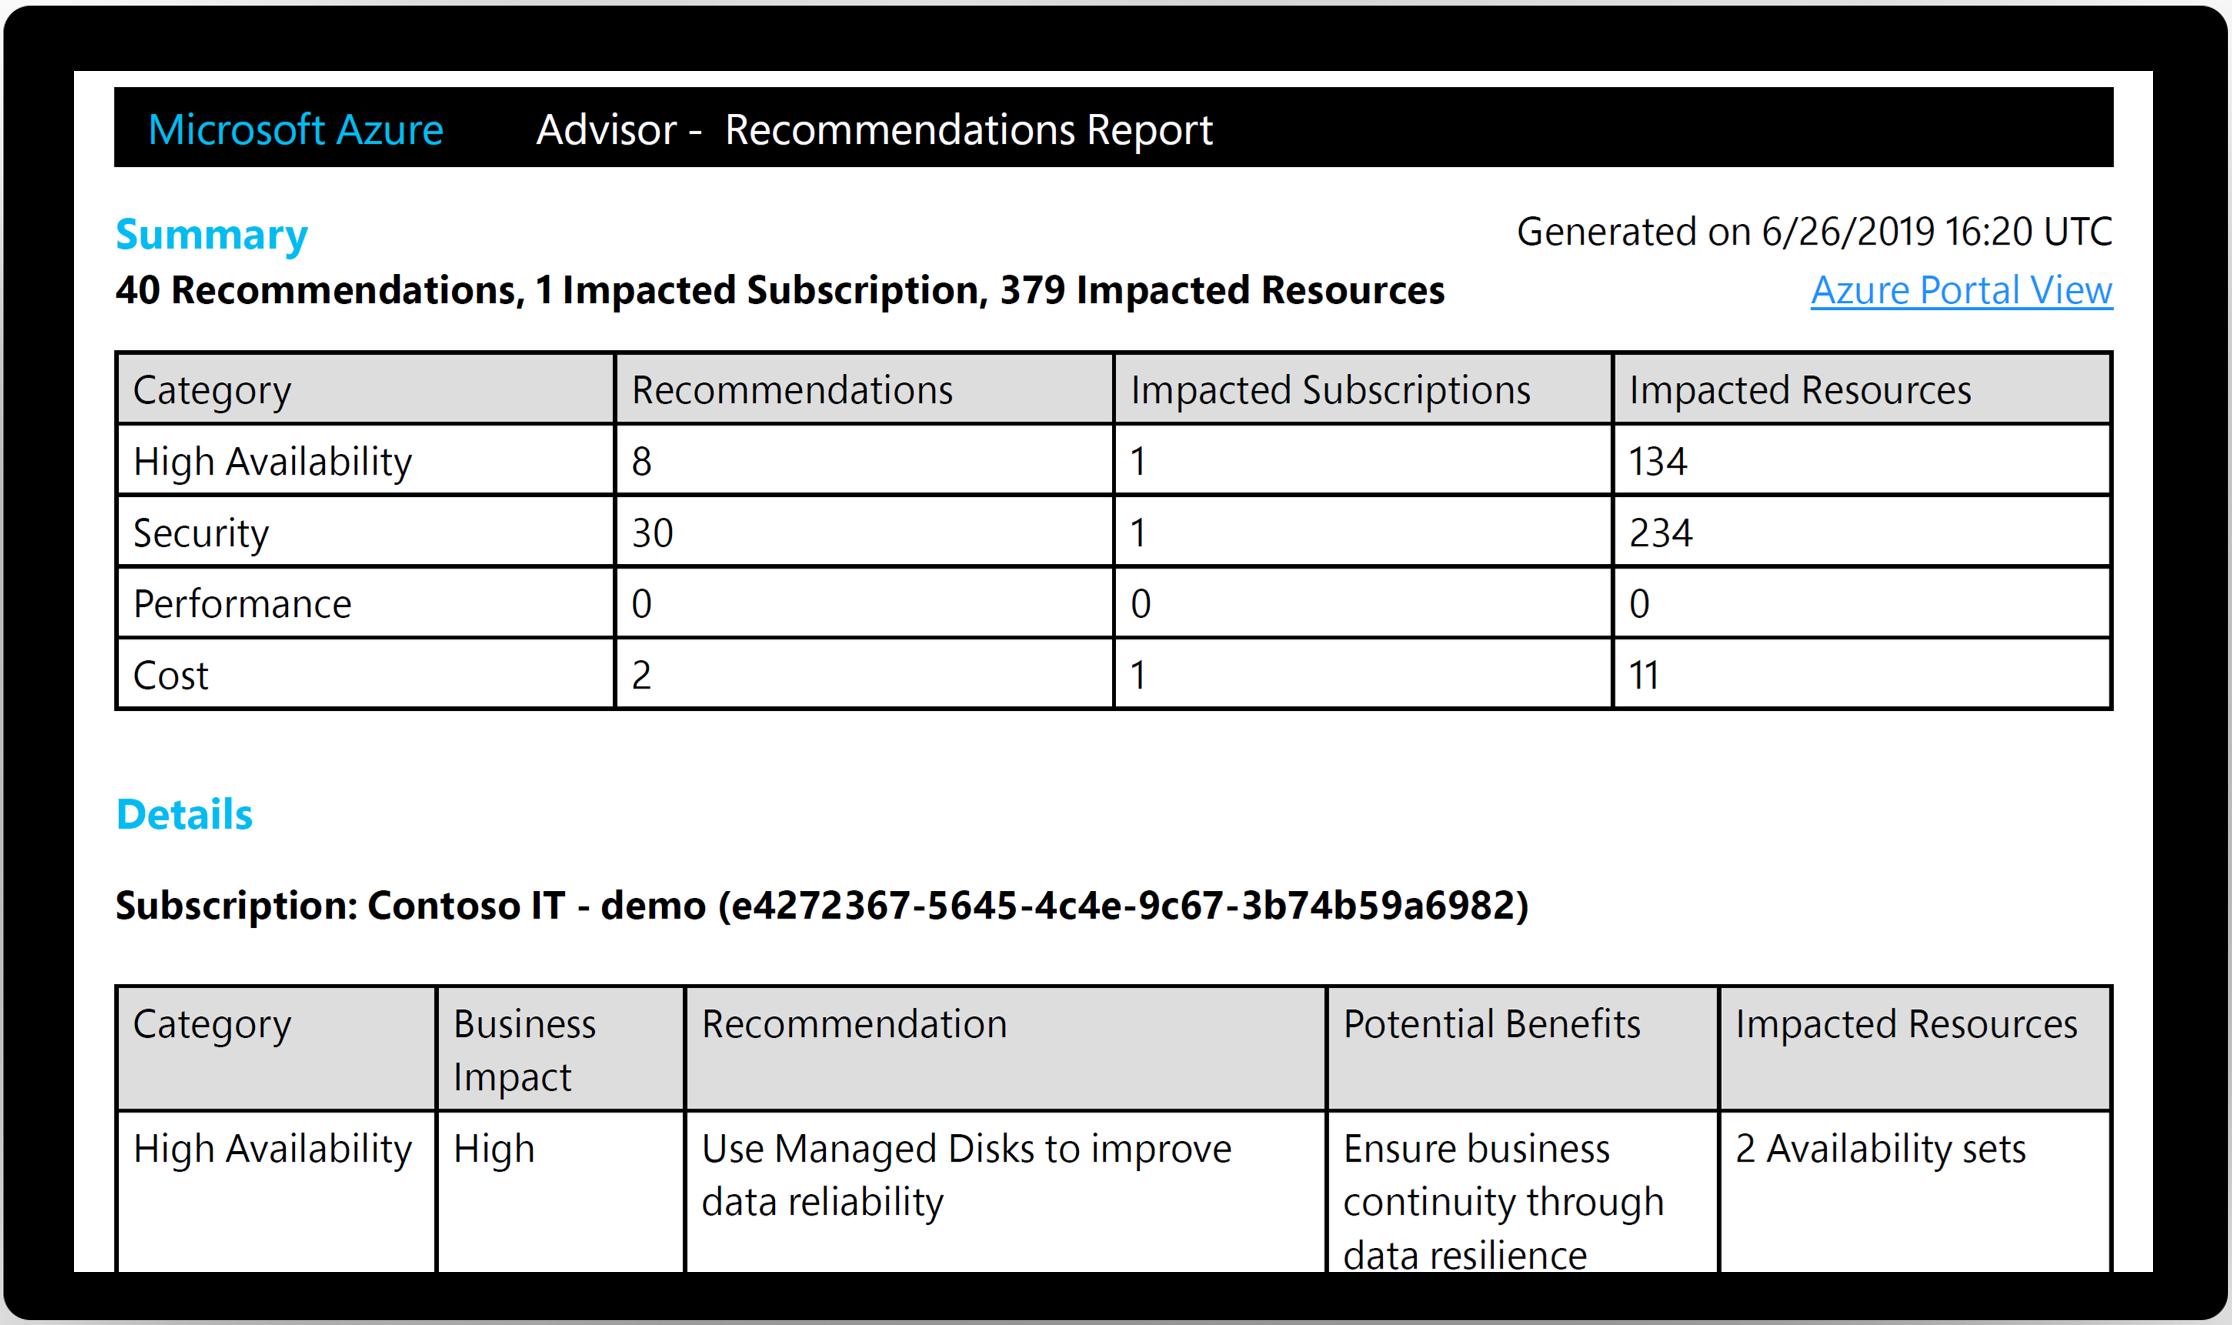 Screenshot displaying a summary of the Advisor recommendations by category, subscription, and potential business impact